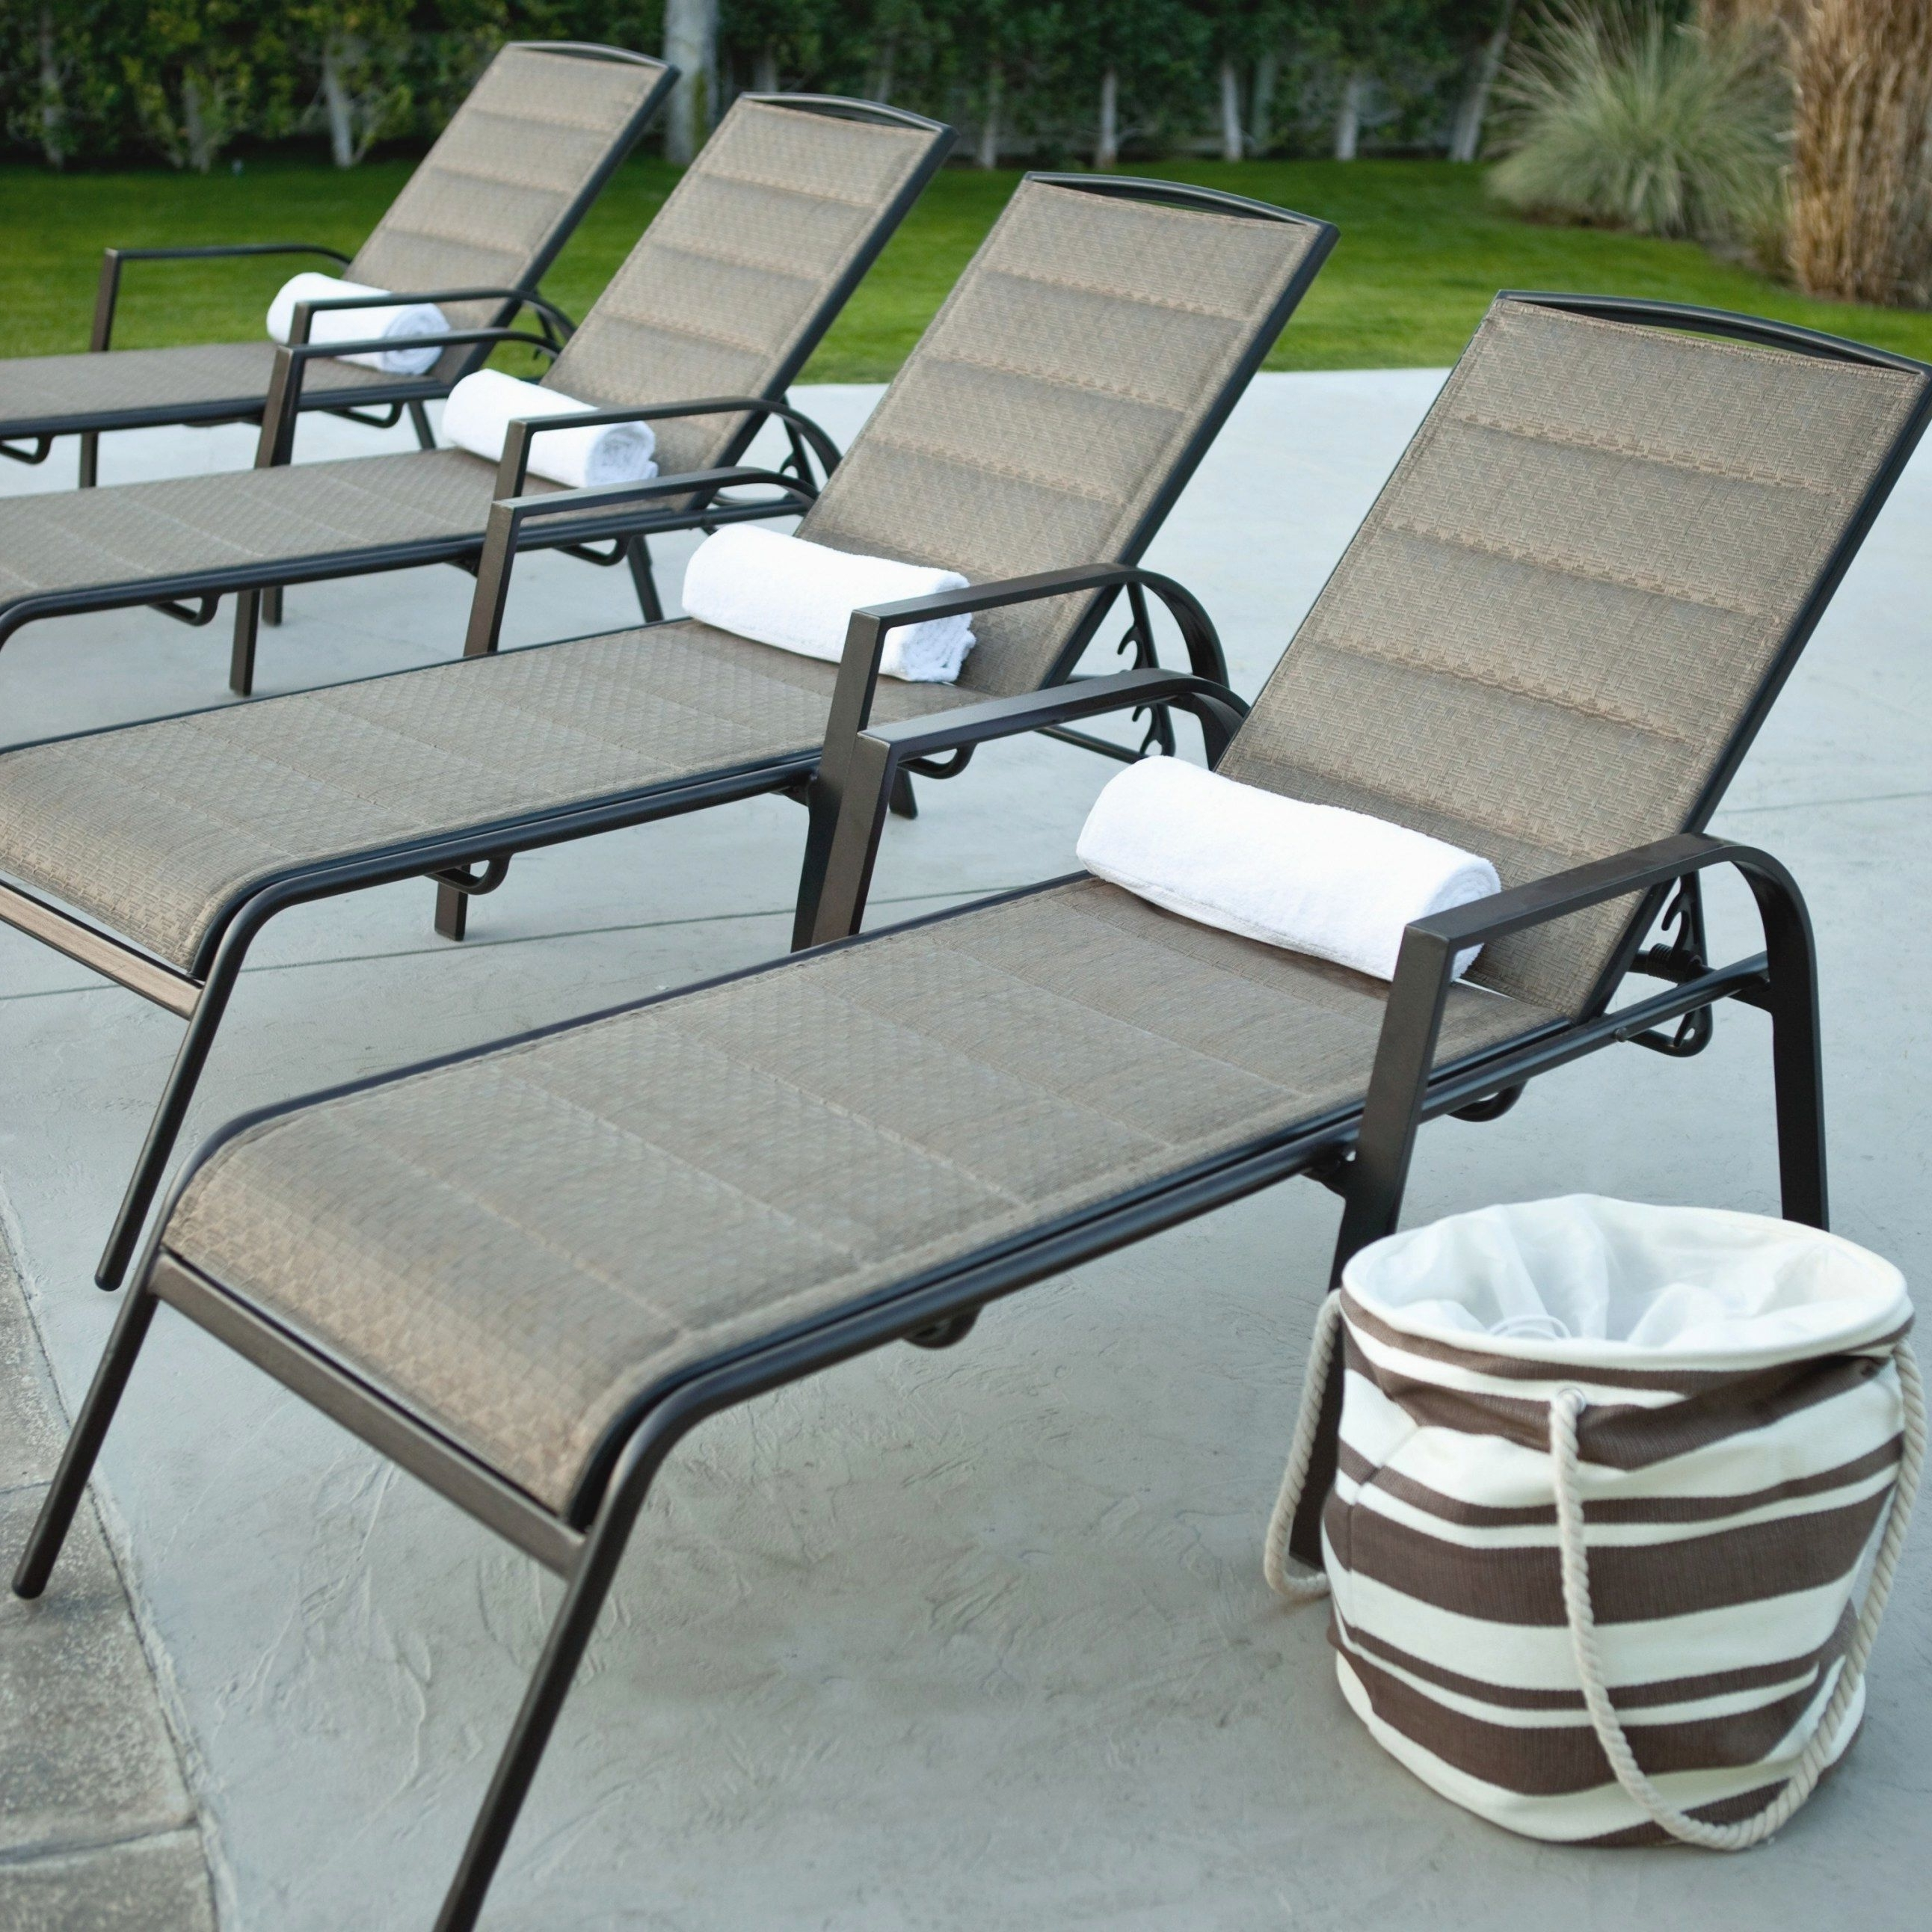 Outdoor Chaise Lounge Chairs Under 100 Modern Fresh Ideas Intended For Latest Deck Chaise Lounge Chairs (View 14 of 15)